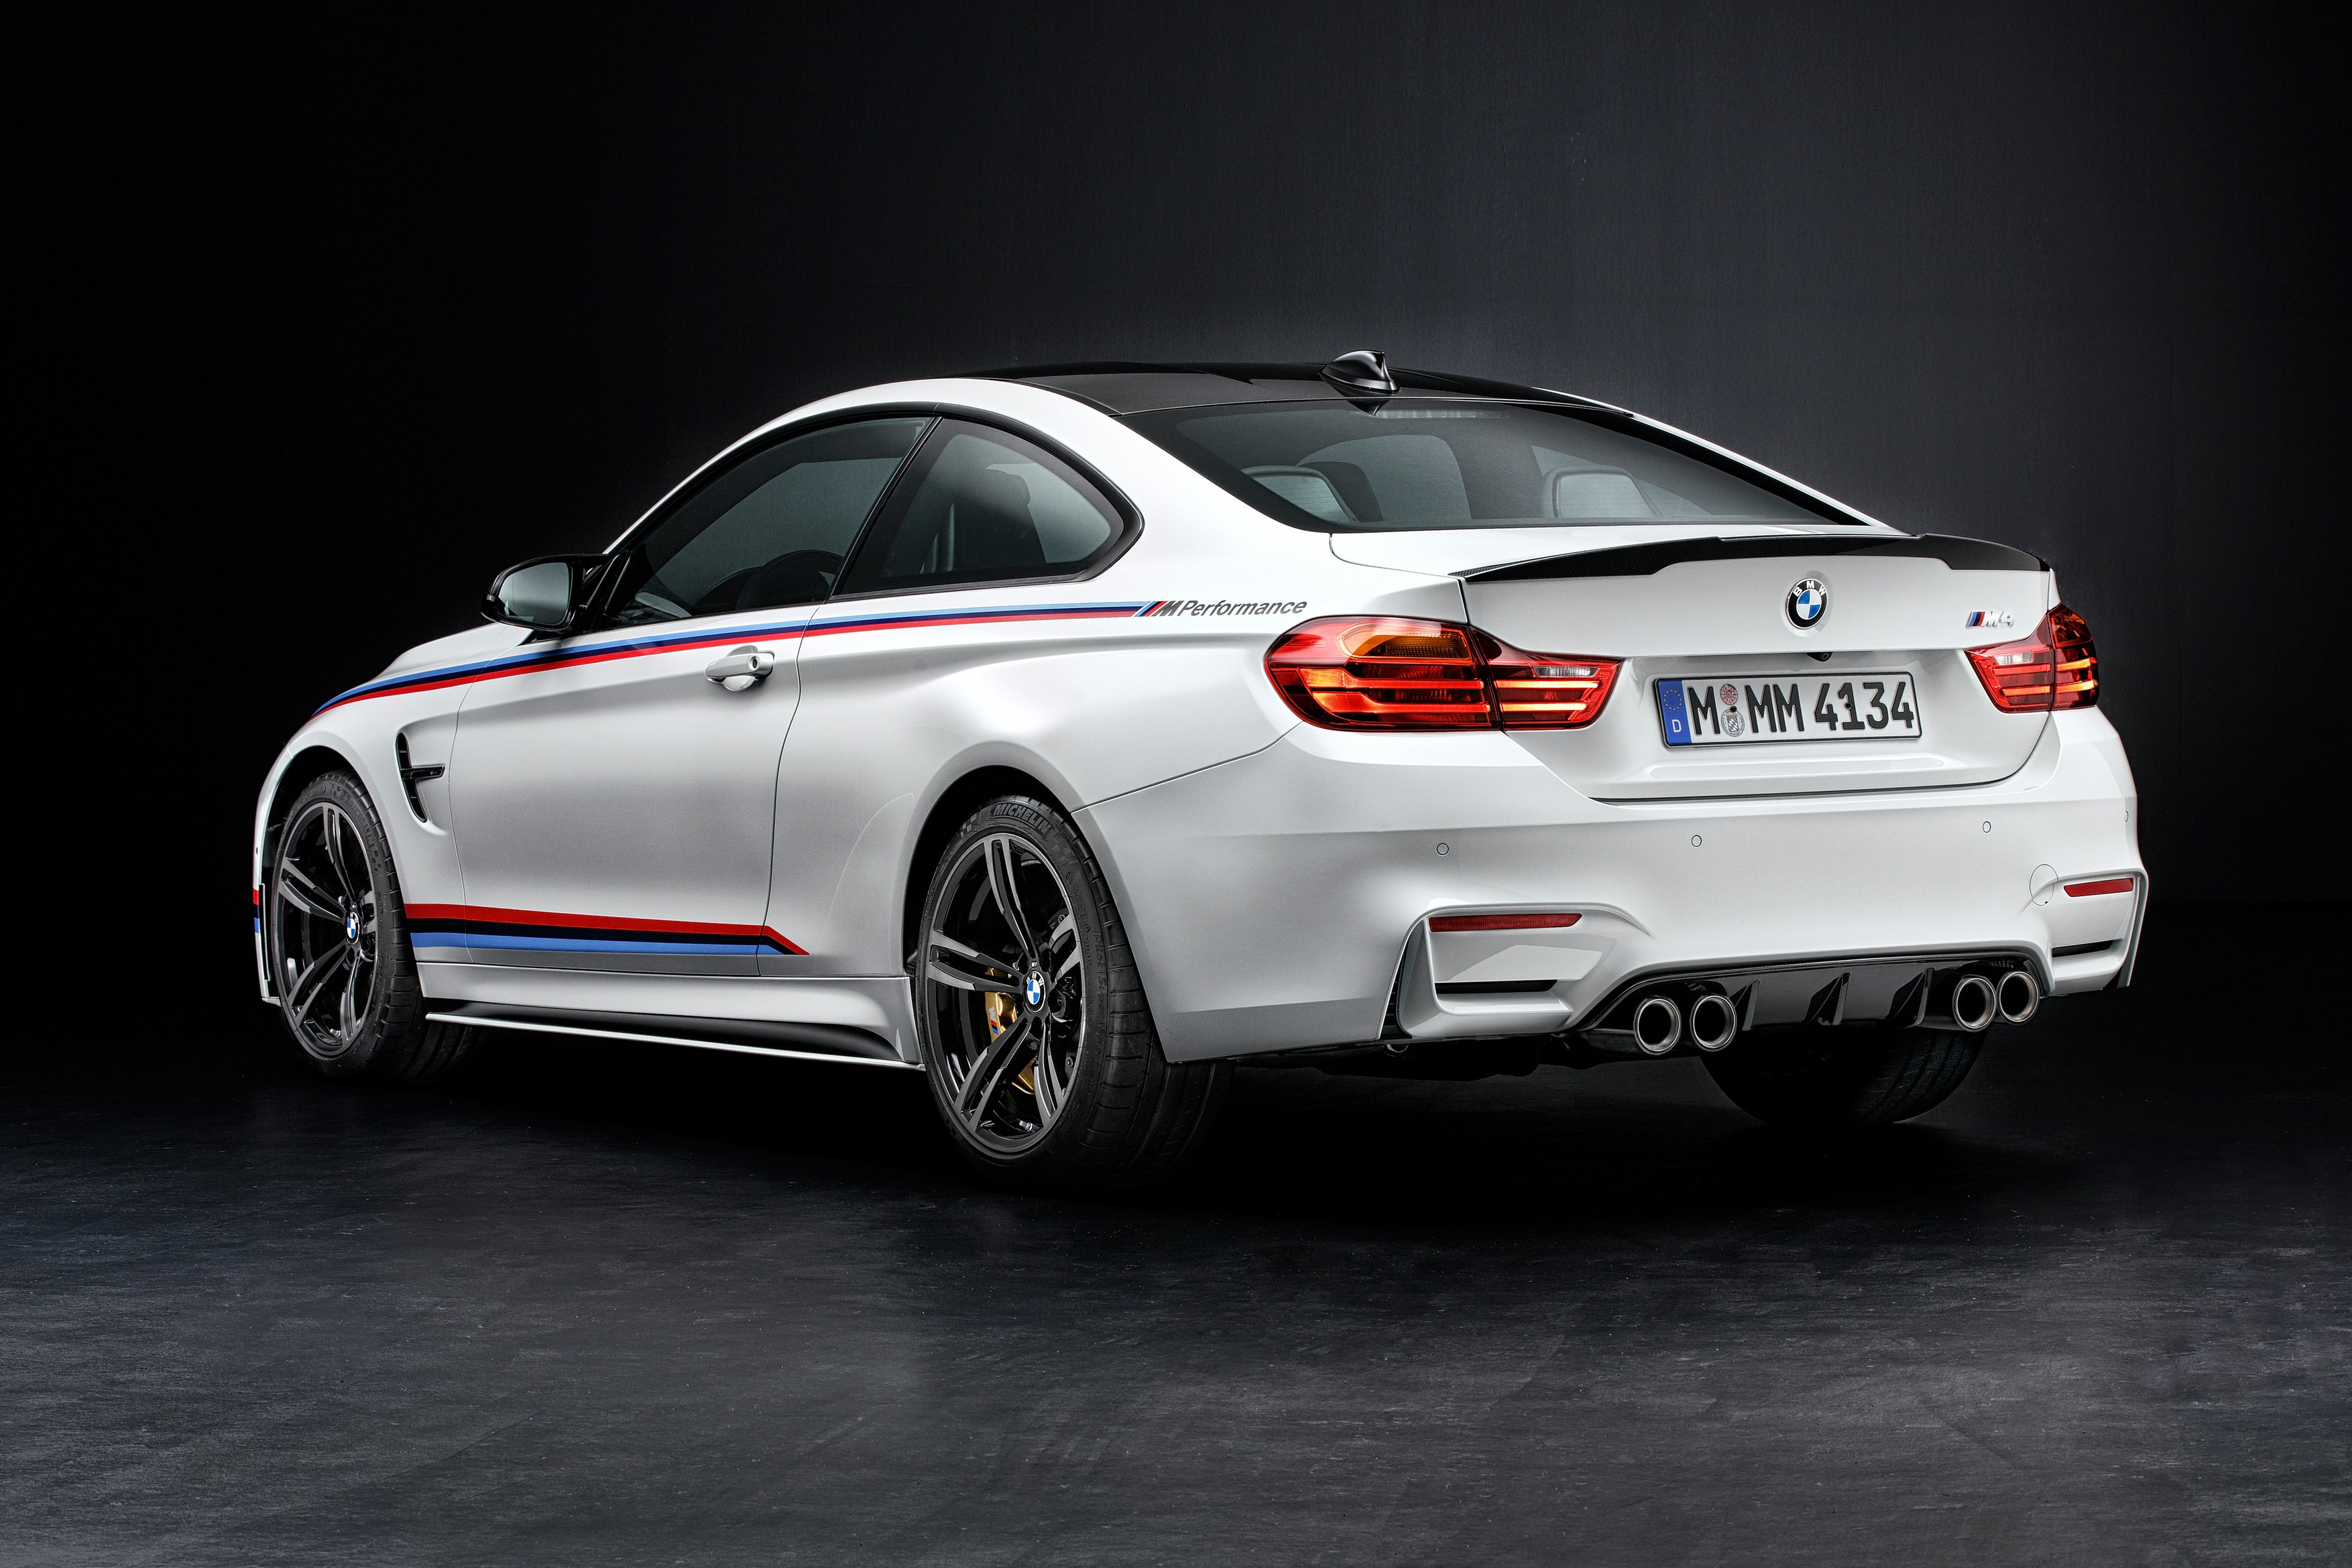 2014 Bmw M 4 Coupe M Performance F82 Tuning Wallpaper